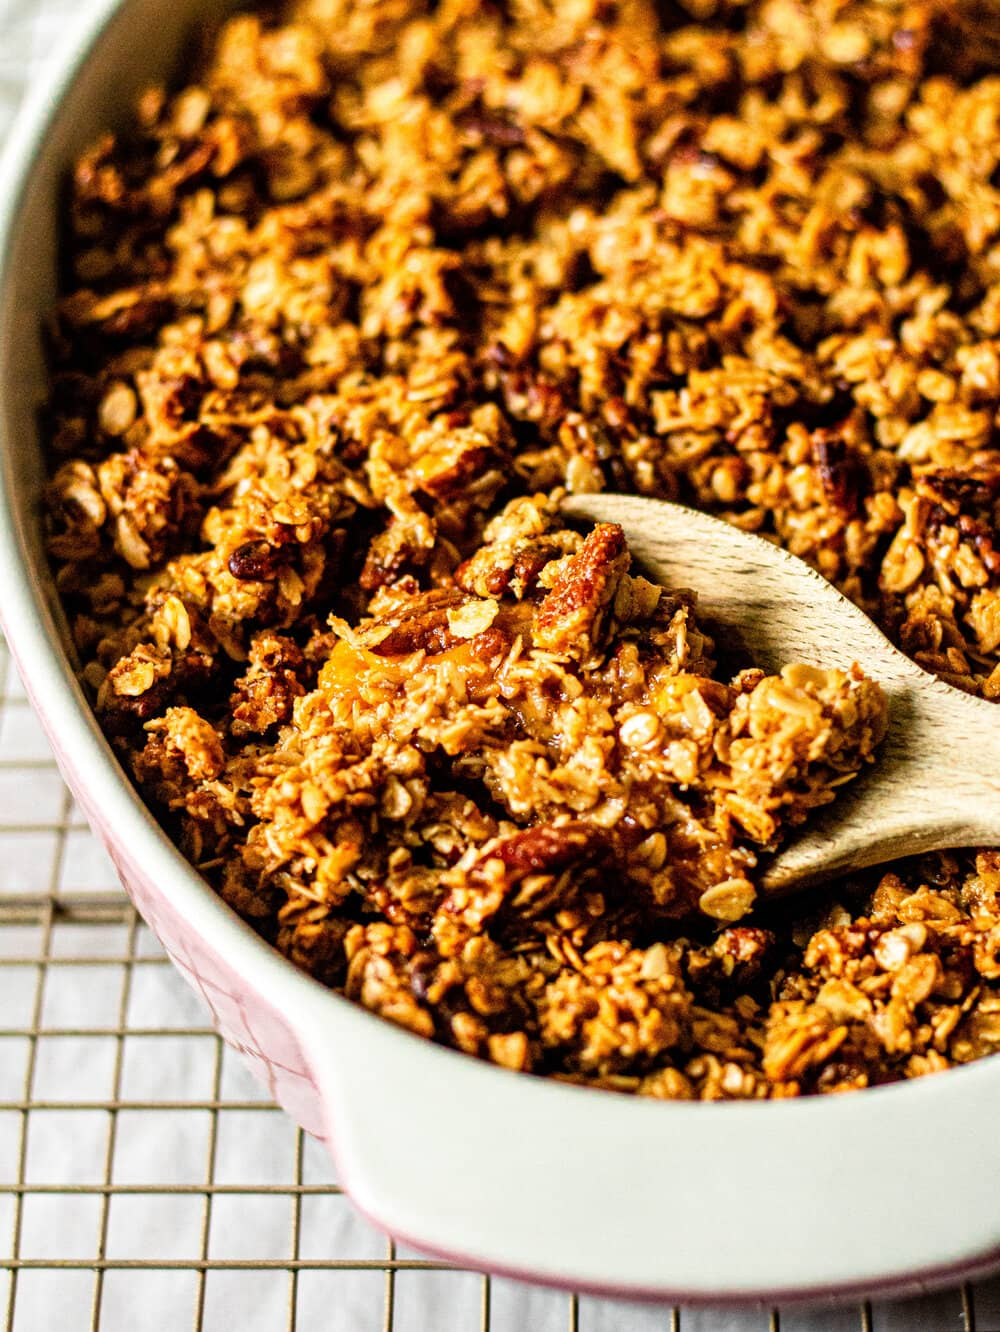 The Best Ever Sweet Potato Casserole with Pecan Streusel Oat Topping (Gluten-Free, Nut-Free Option, Dairy-Free Option)